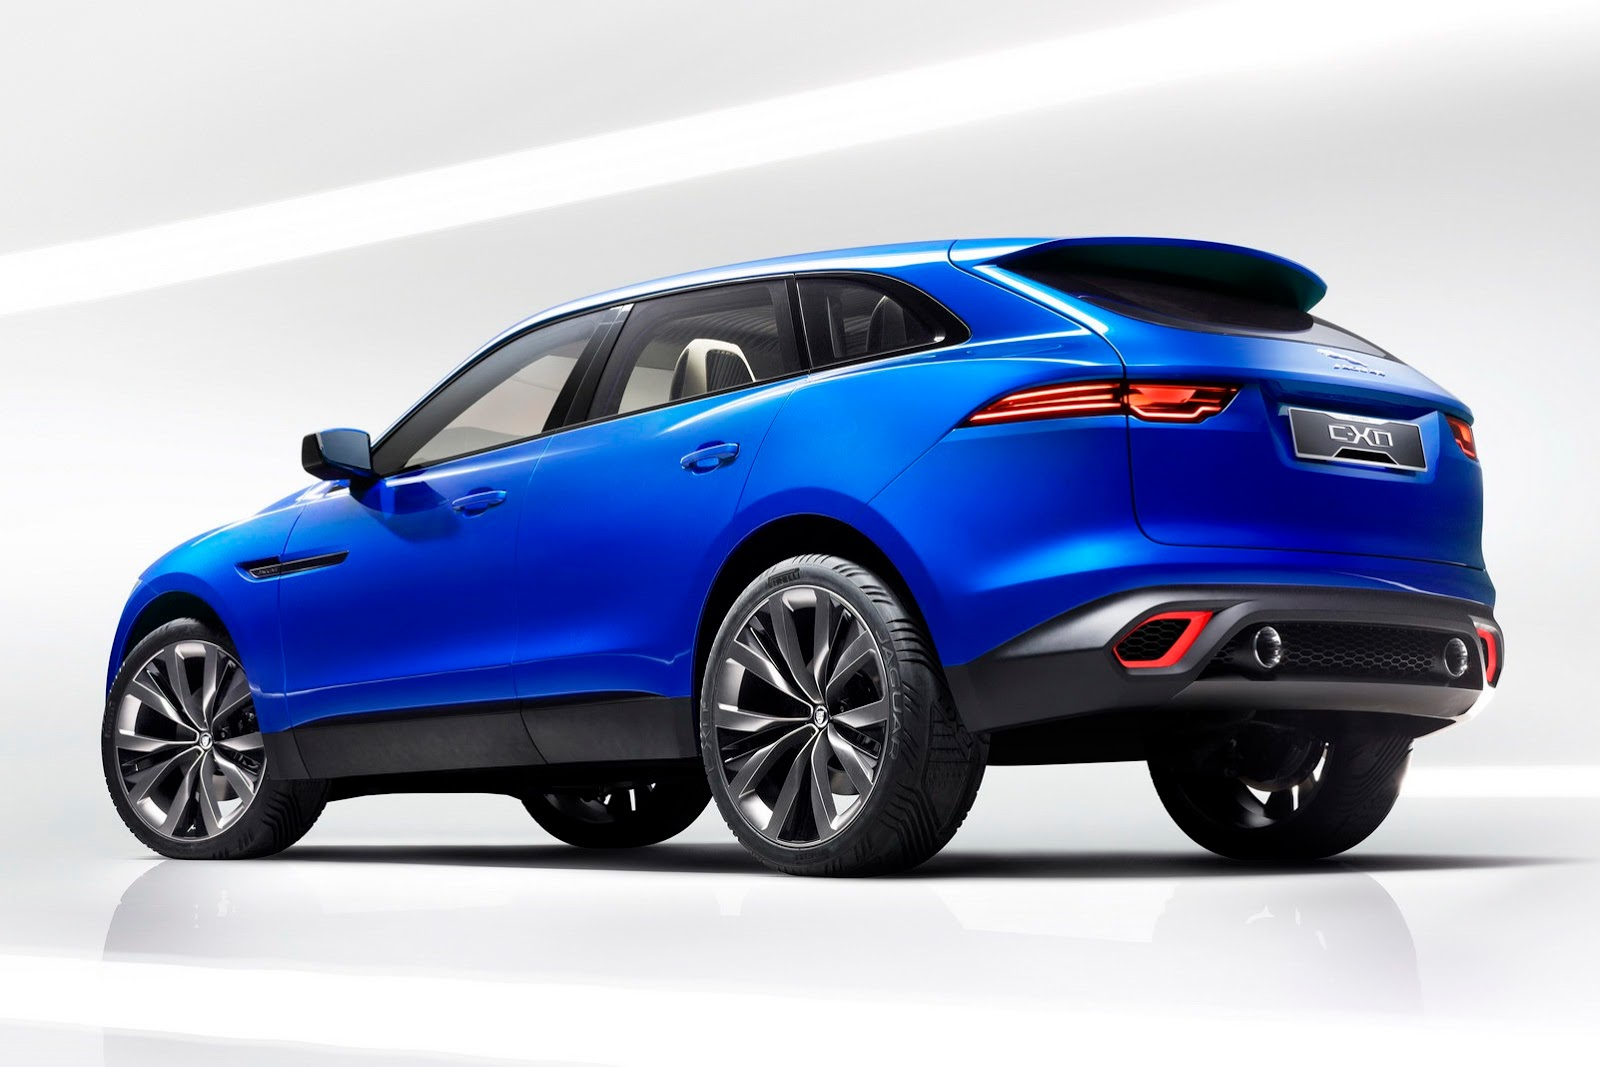 Jaguar C-X17 Crossover Concept Fully Revealed - autoevolution